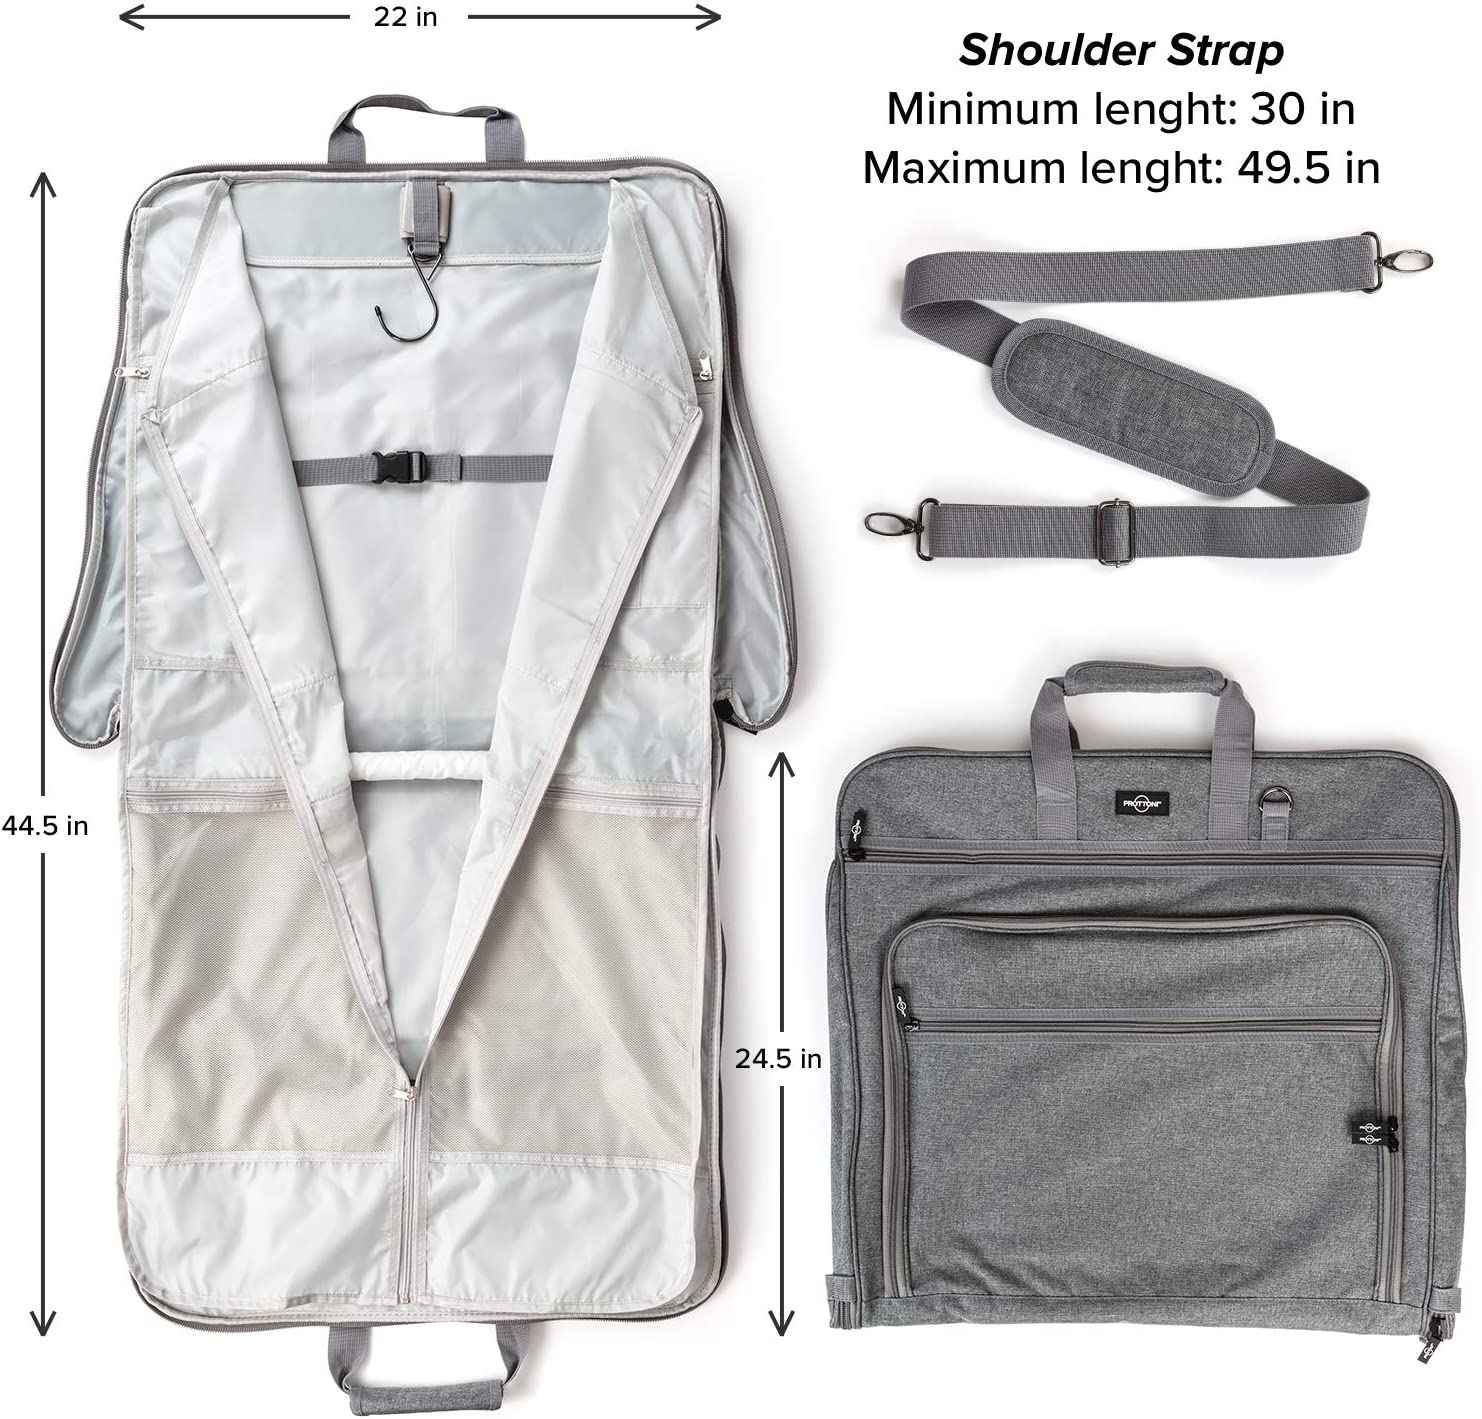 Garment Suitcase With Toiletry Bag Black + Clear Toiletry Bag, 44 Prottoni 44-Inch Suit Carrier For Travel